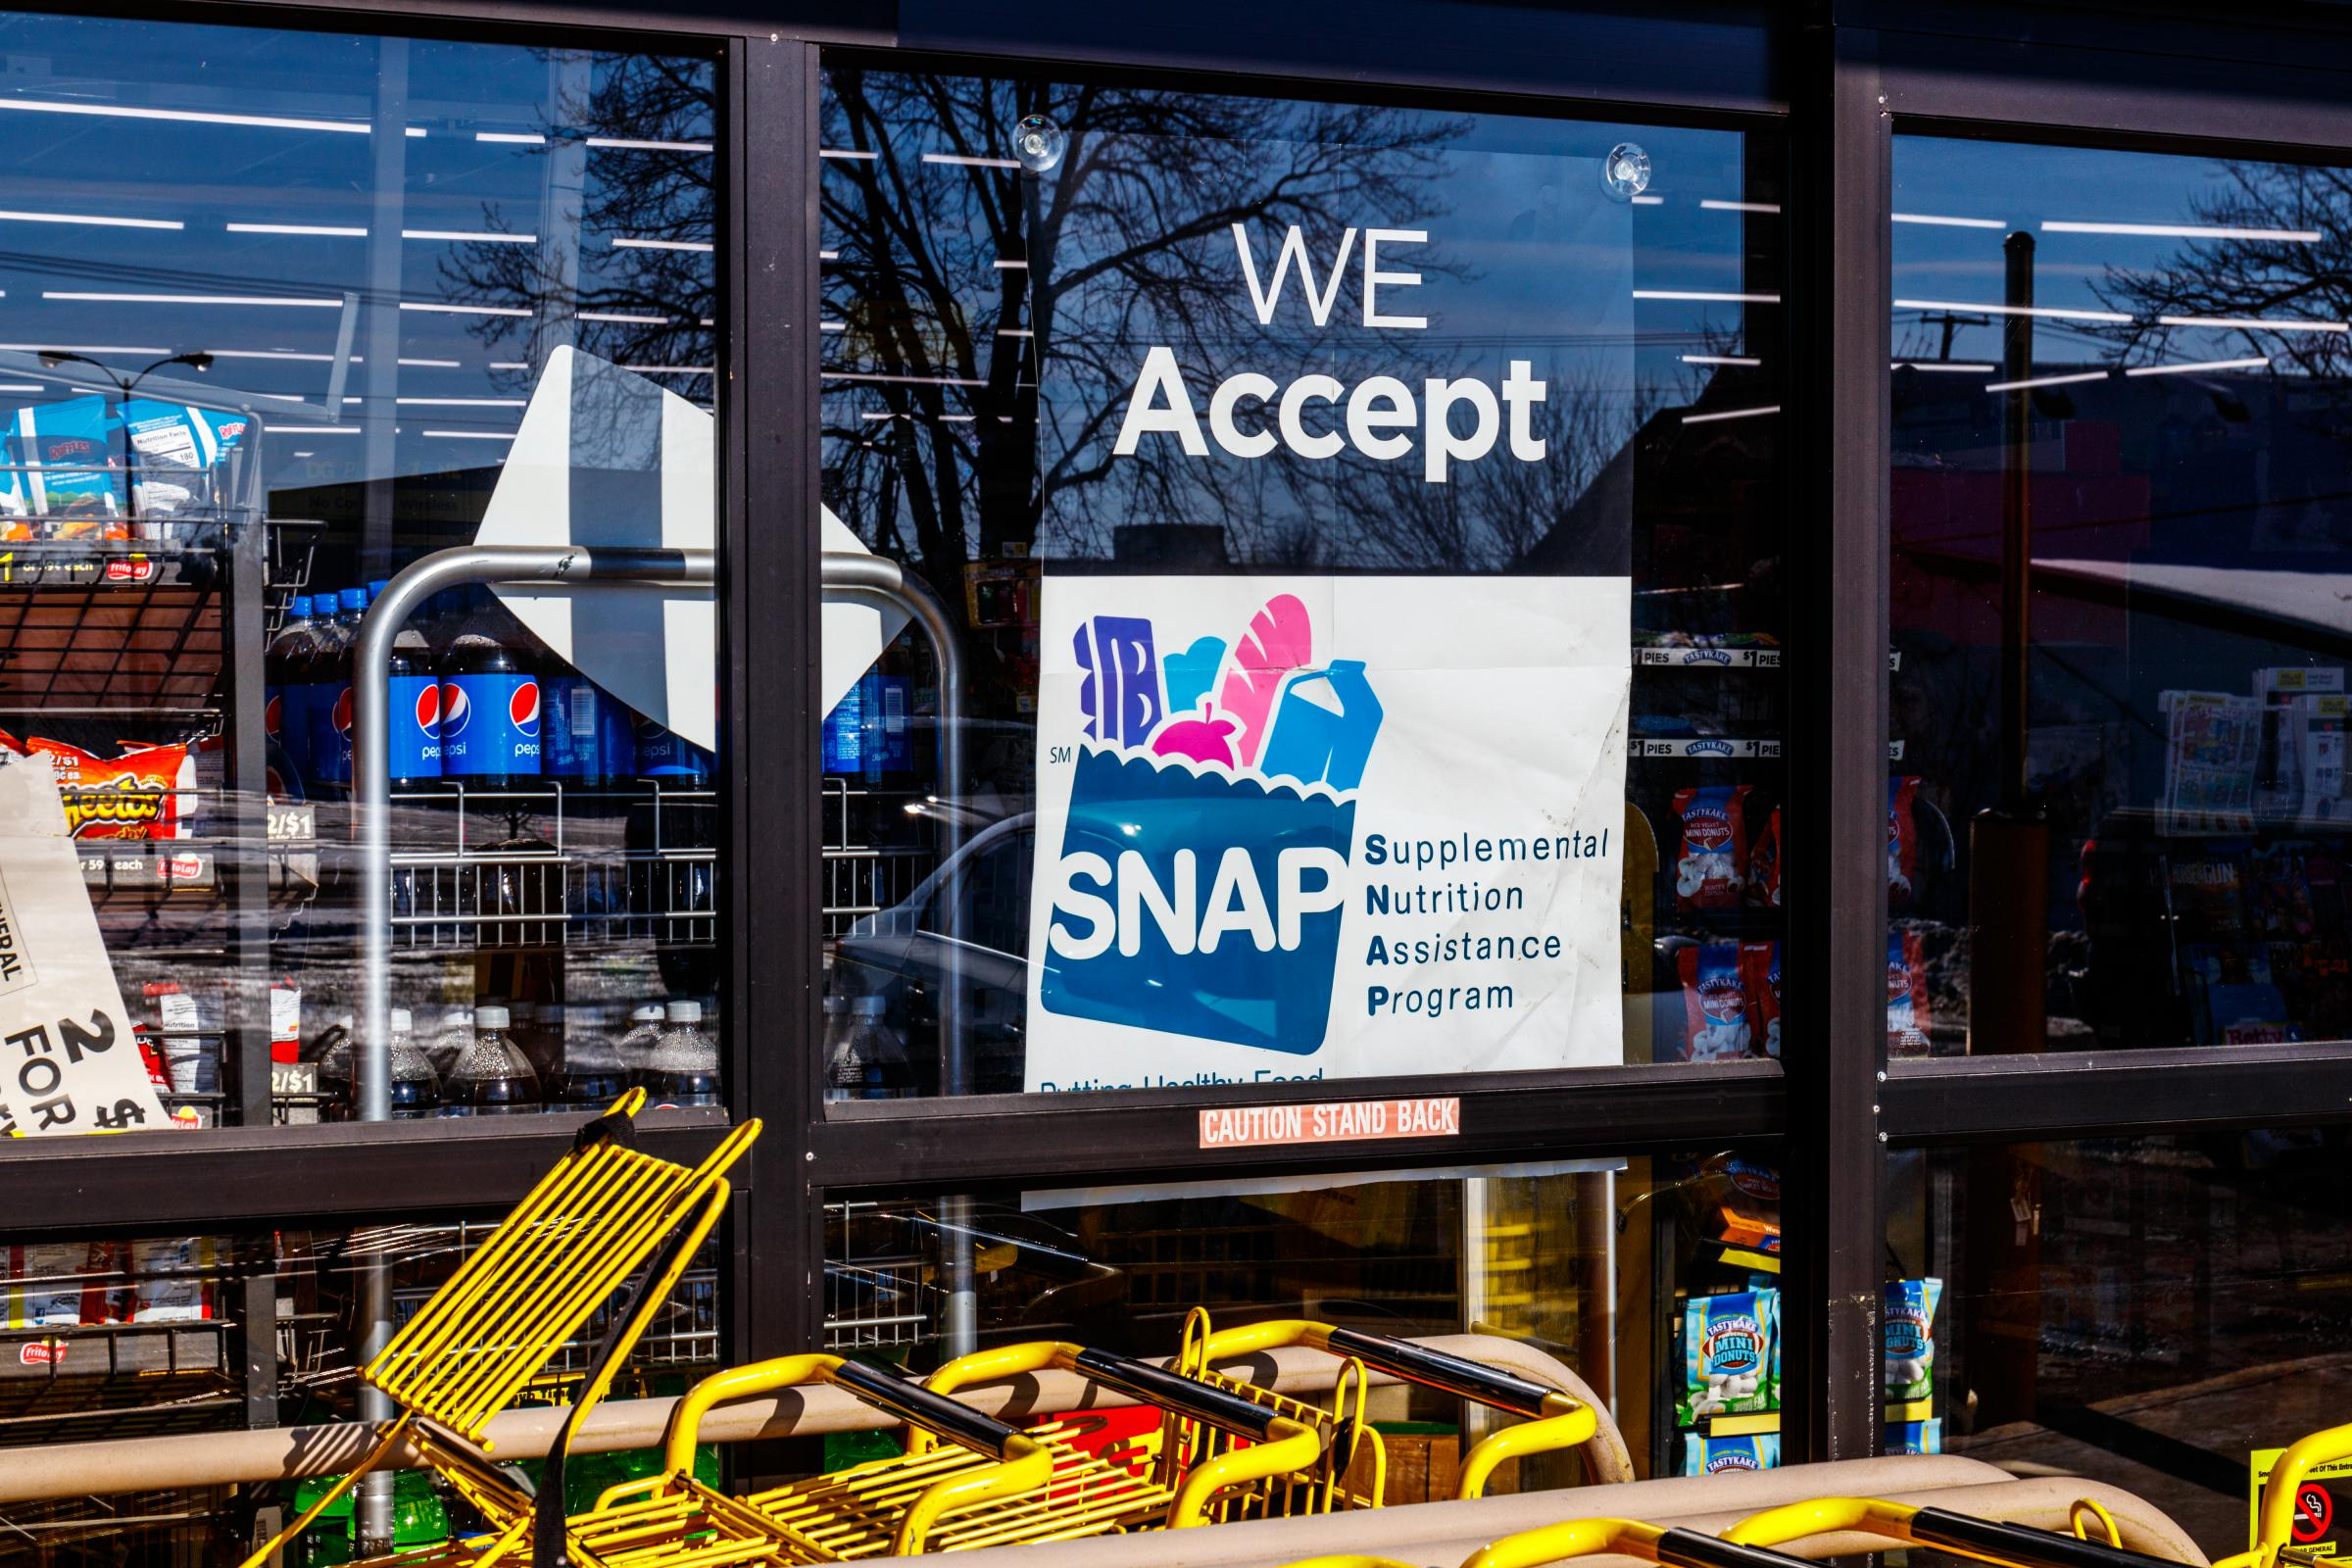 SNAP, food assistance, food aid, low-income Americans, poverty in America, food deserts, food stamps